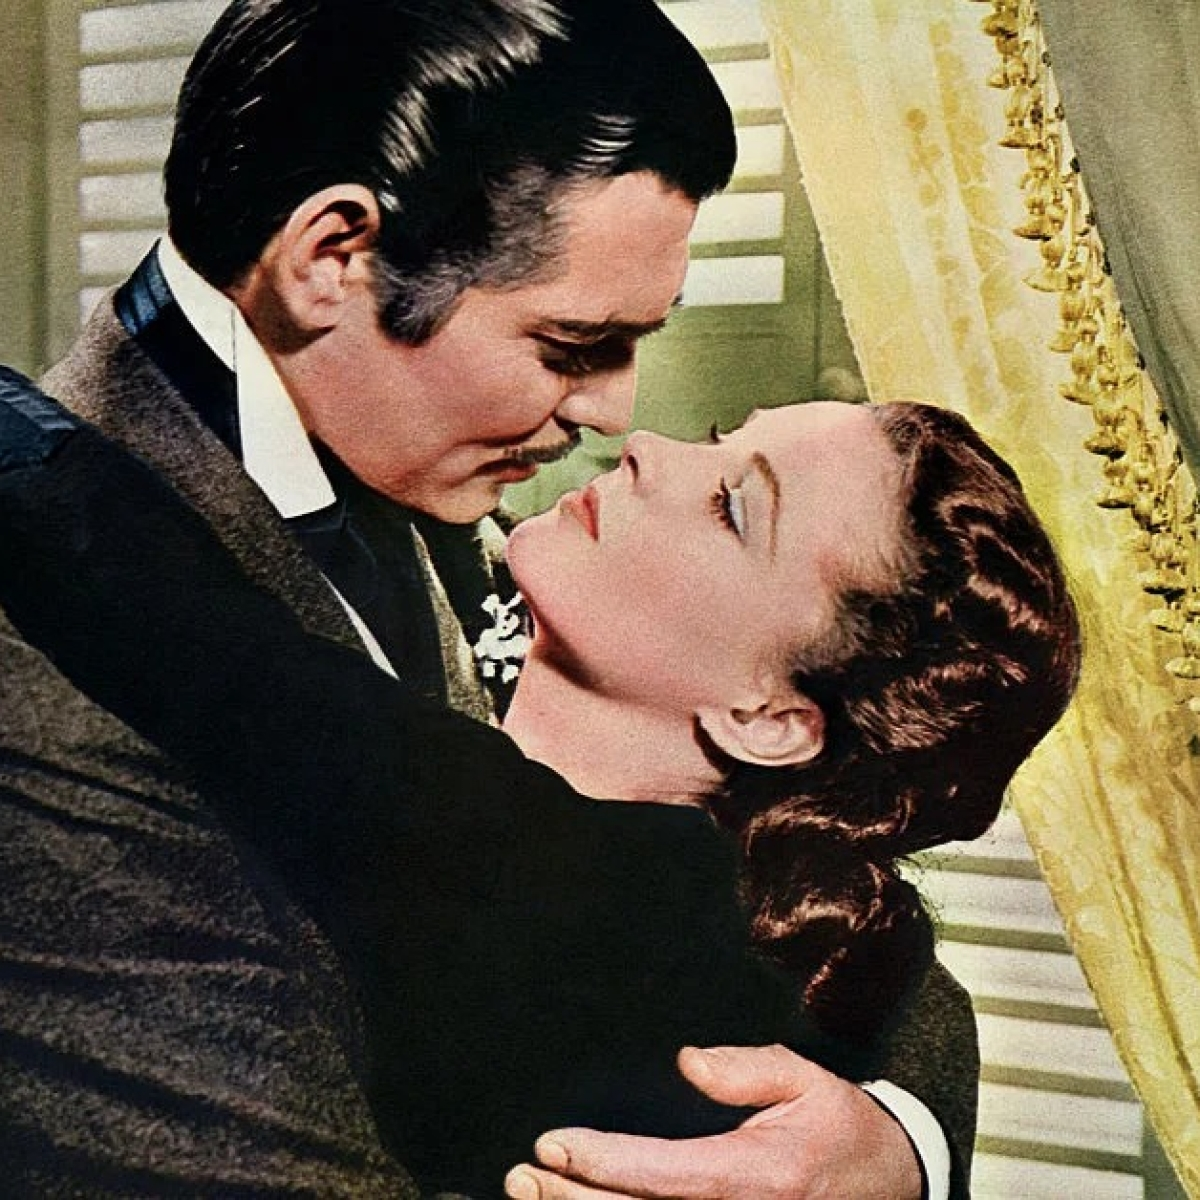 Gone with the wokes: Now HBO Max pulls Civil War epic 'Gone With the Wind'